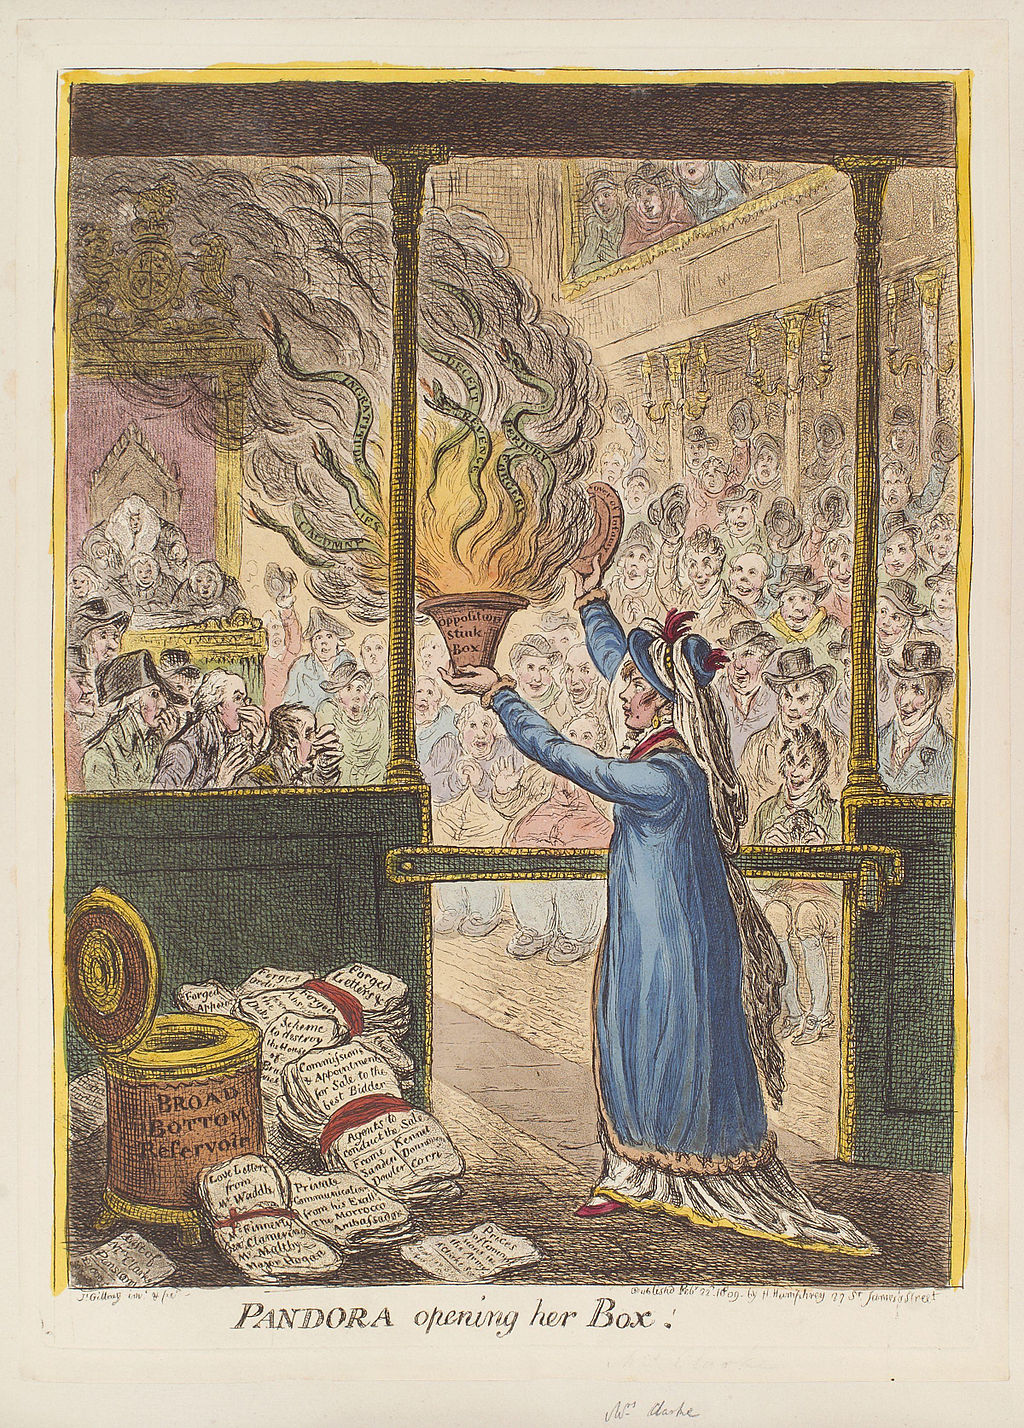 1024px-Pandora_opening_her_box_by_James_Gillray